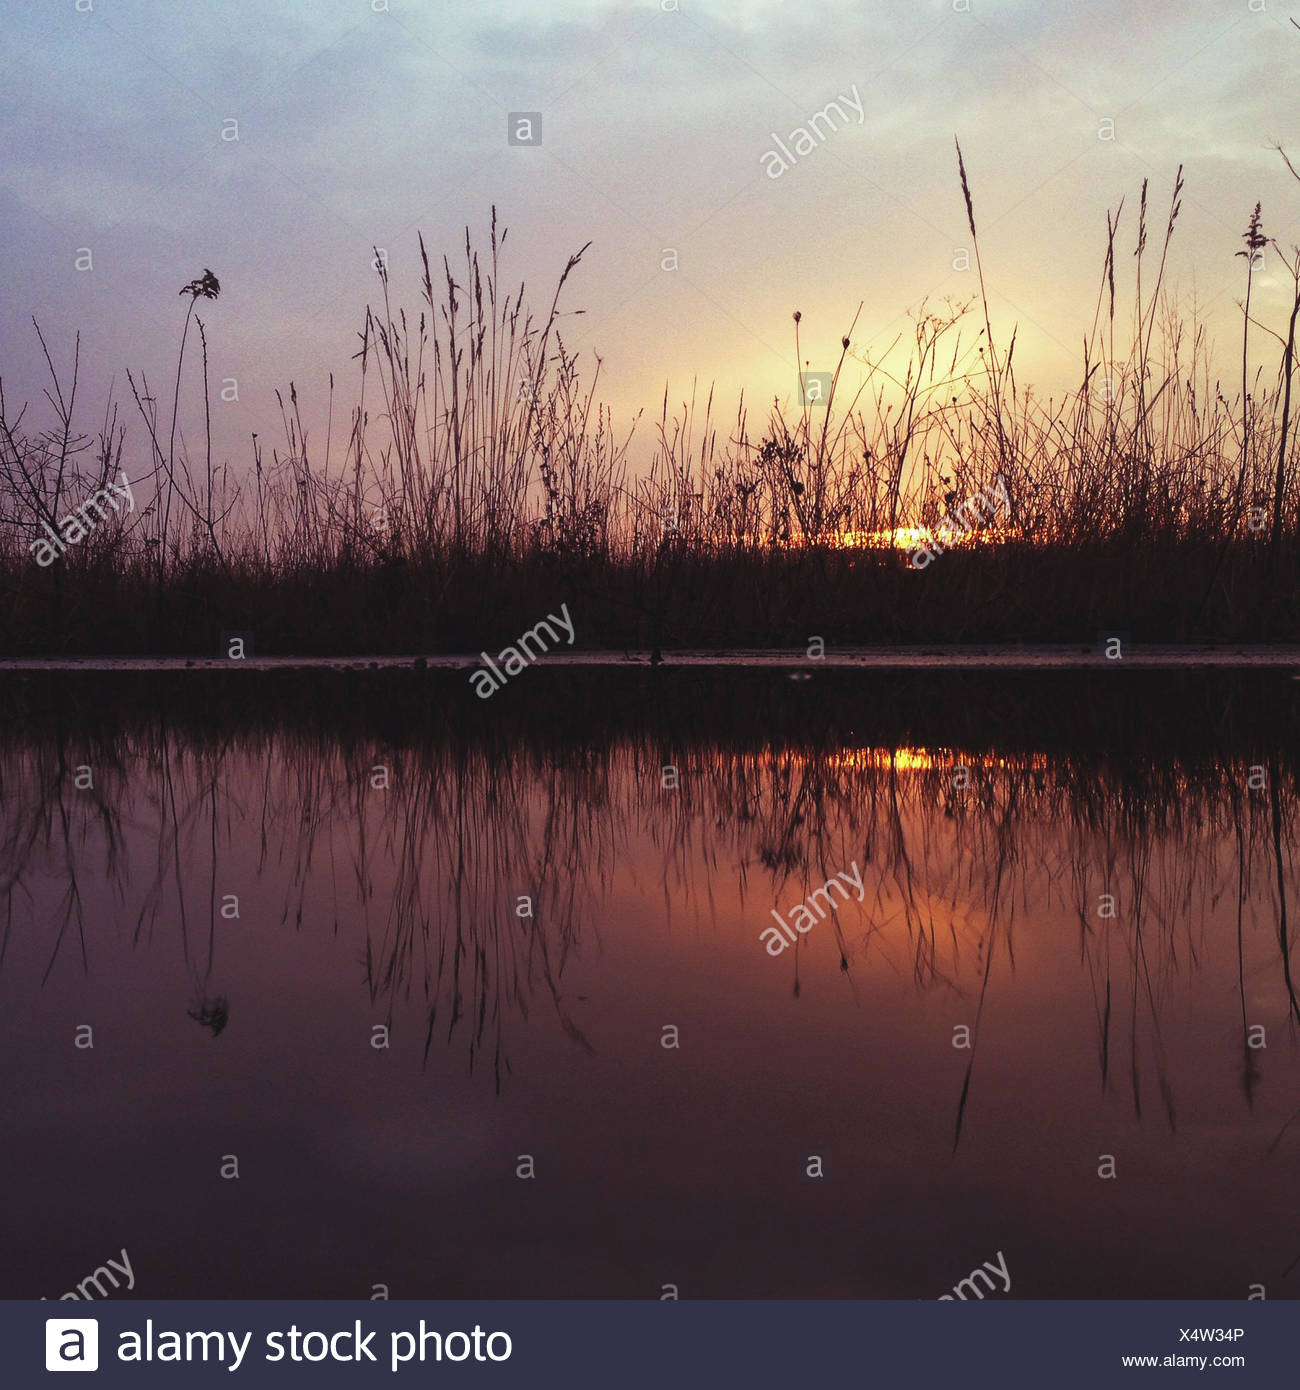 Reeds and feather grass at sunset - Stock Image